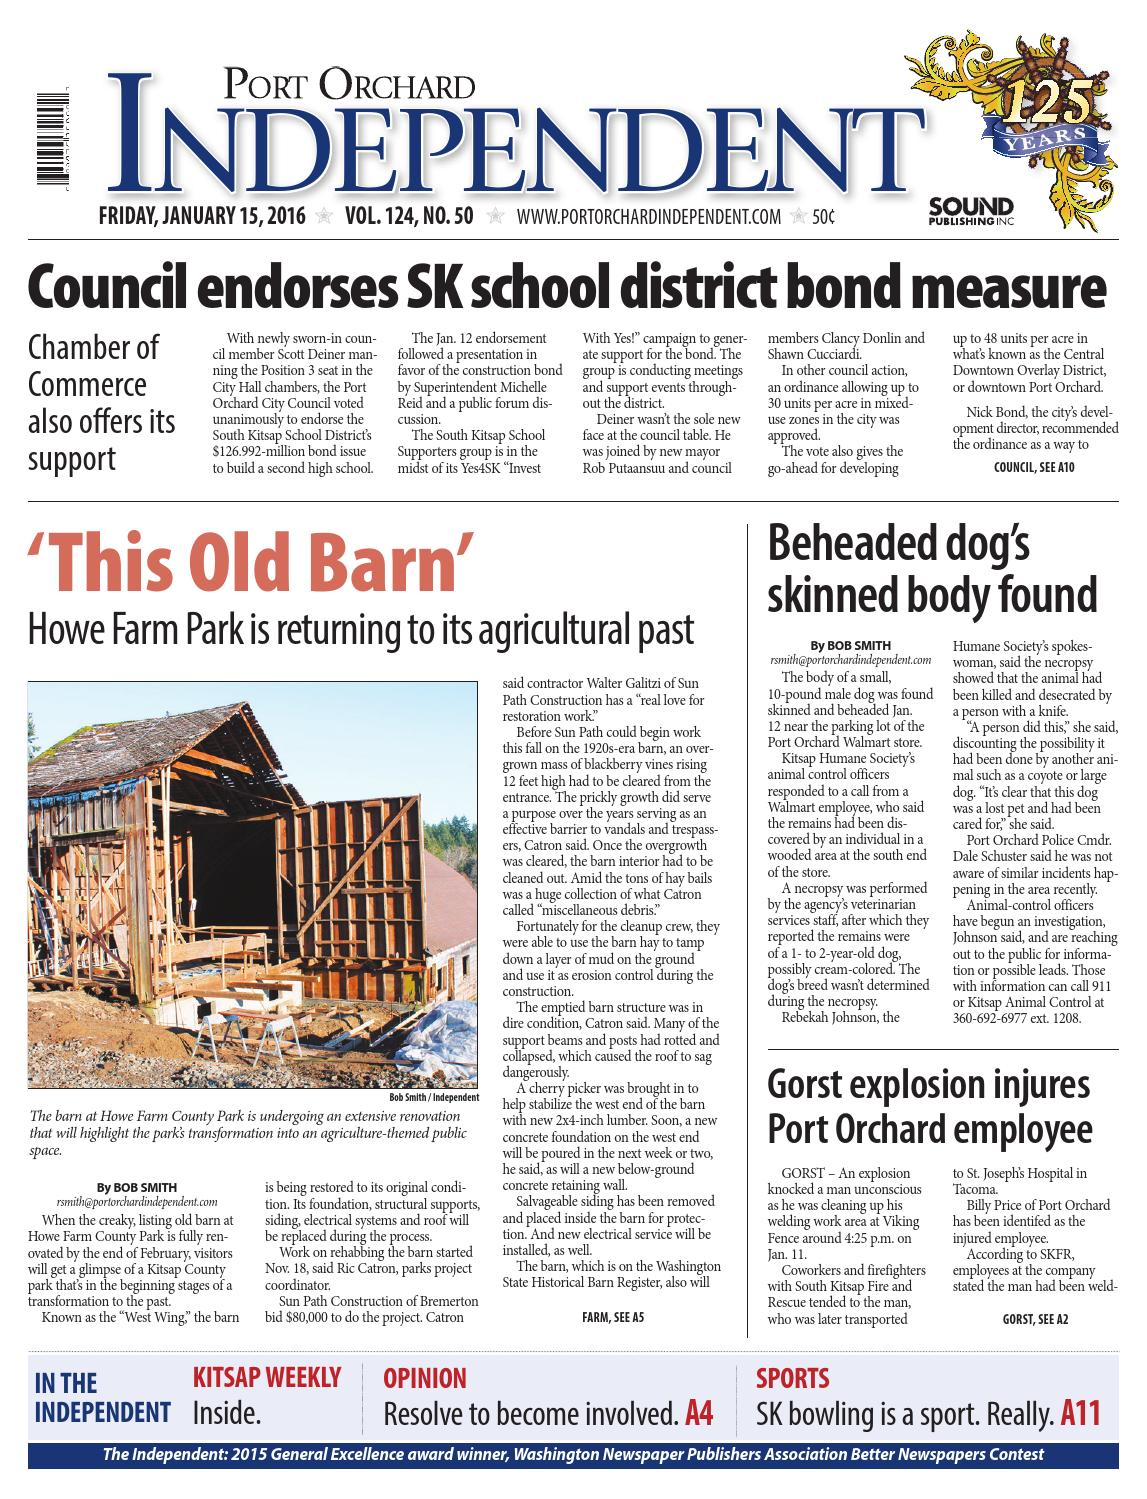 Port Orchard Independent, January 15, 2016 by Sound